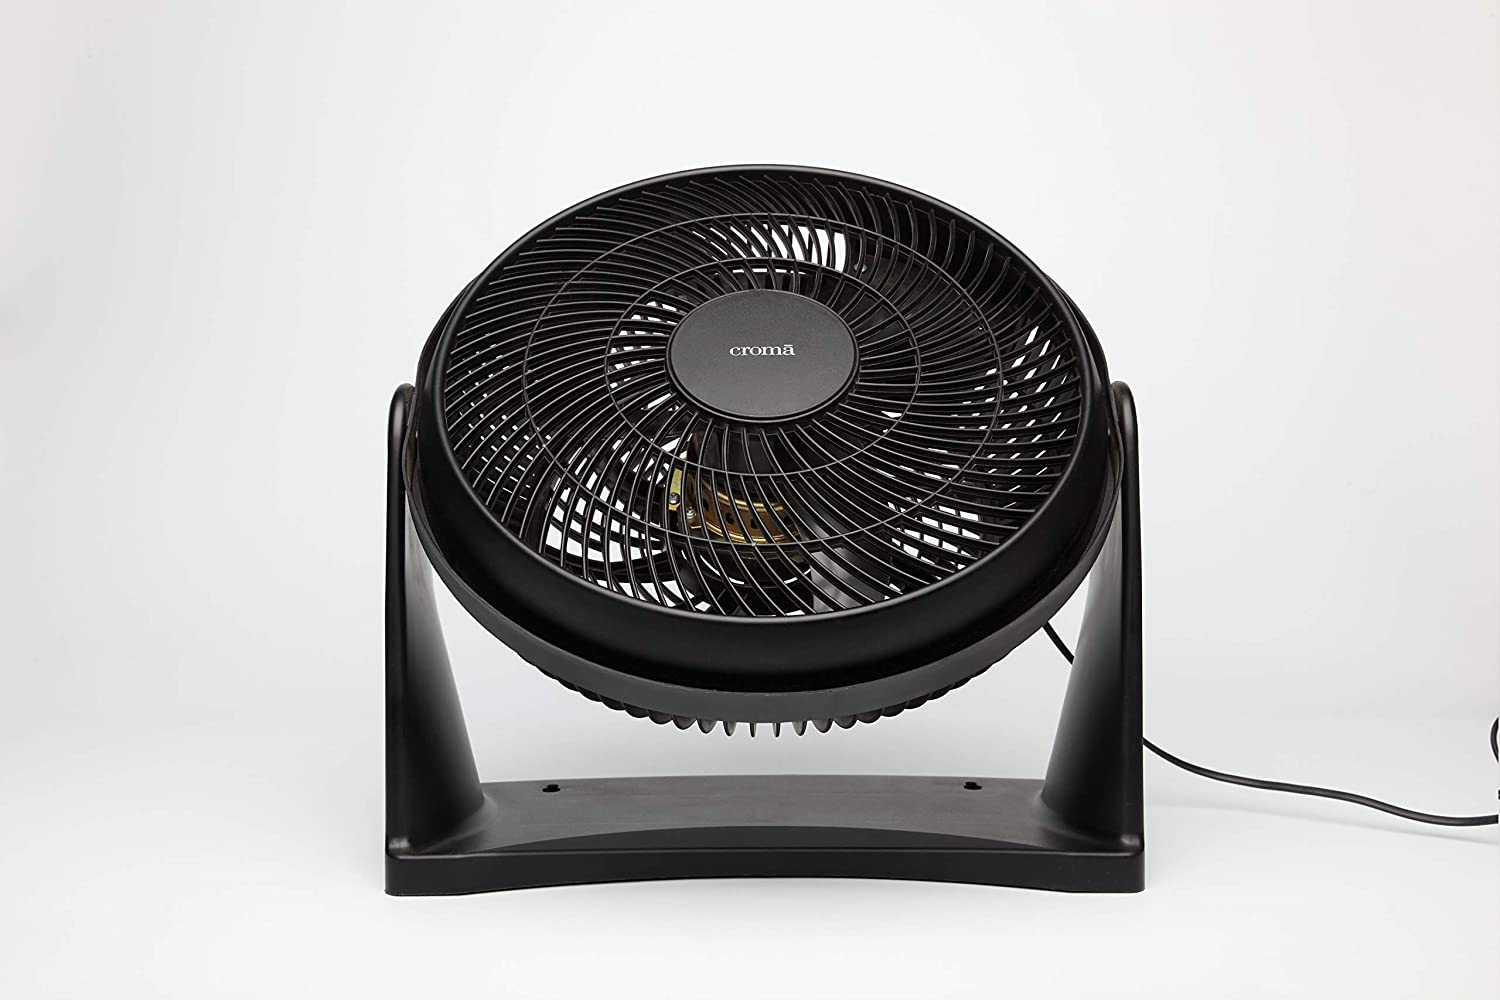 6750f7ad2 Buy Croma CRF0026 45-Watt Pivot Fan Online at Low Prices in India -  Amazon.in